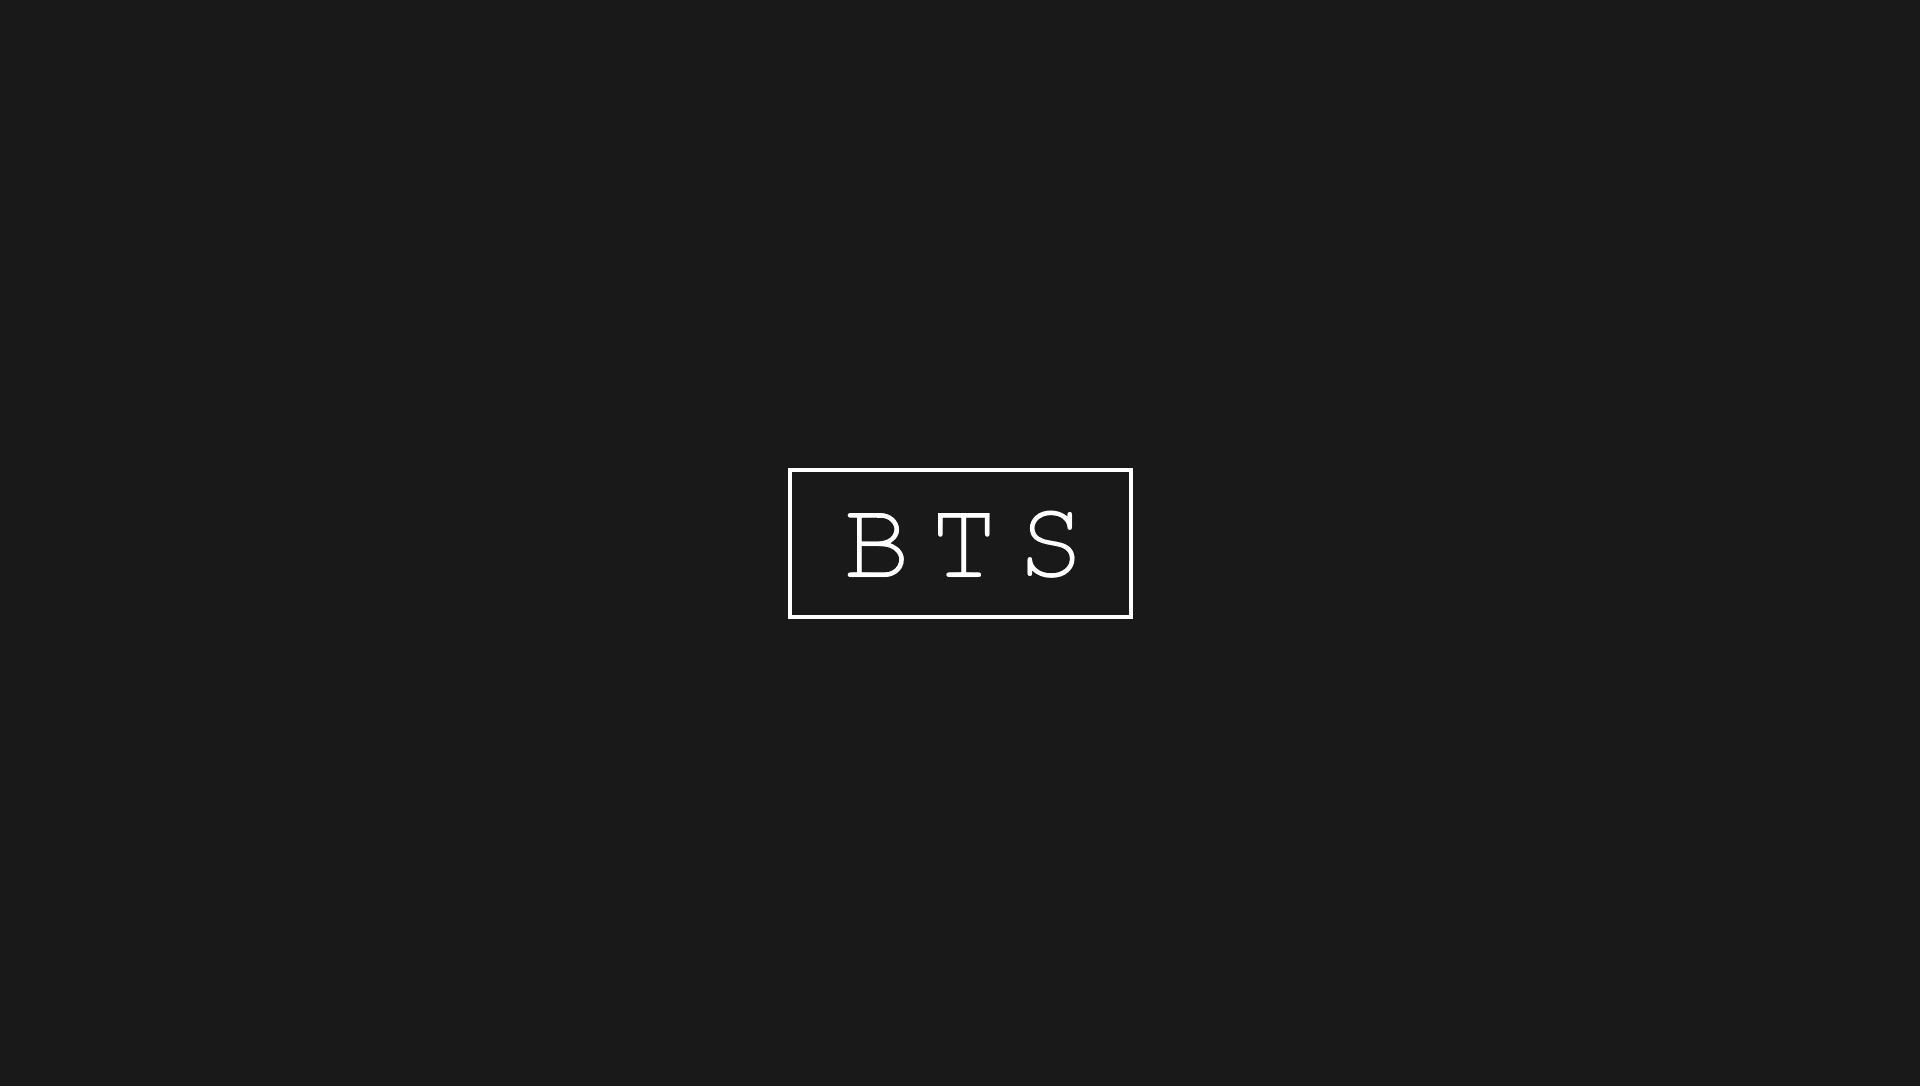 Bts Wallpapers For Desktop 74 Images